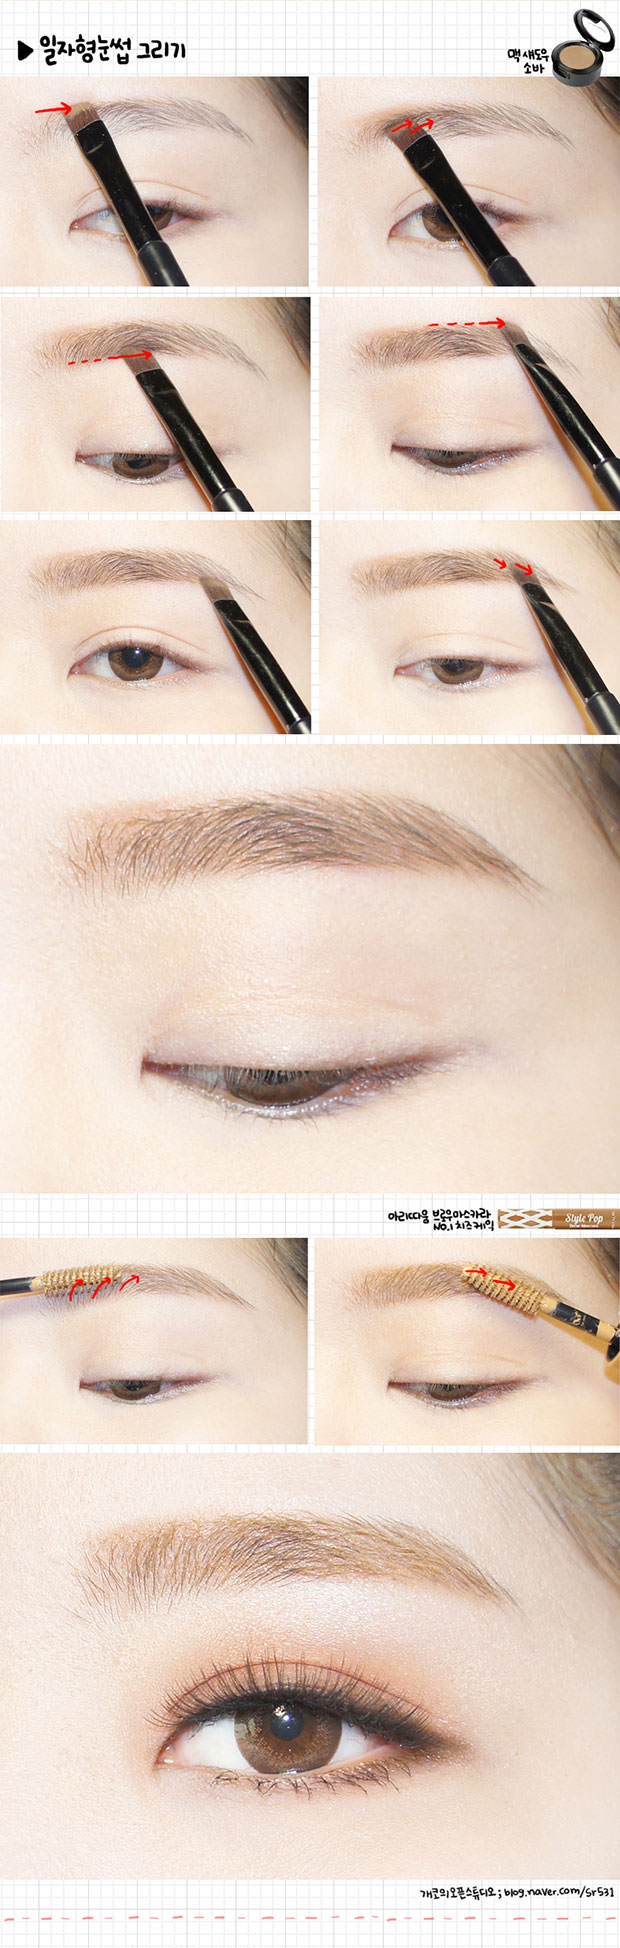 how to get straight eyebrows from arched